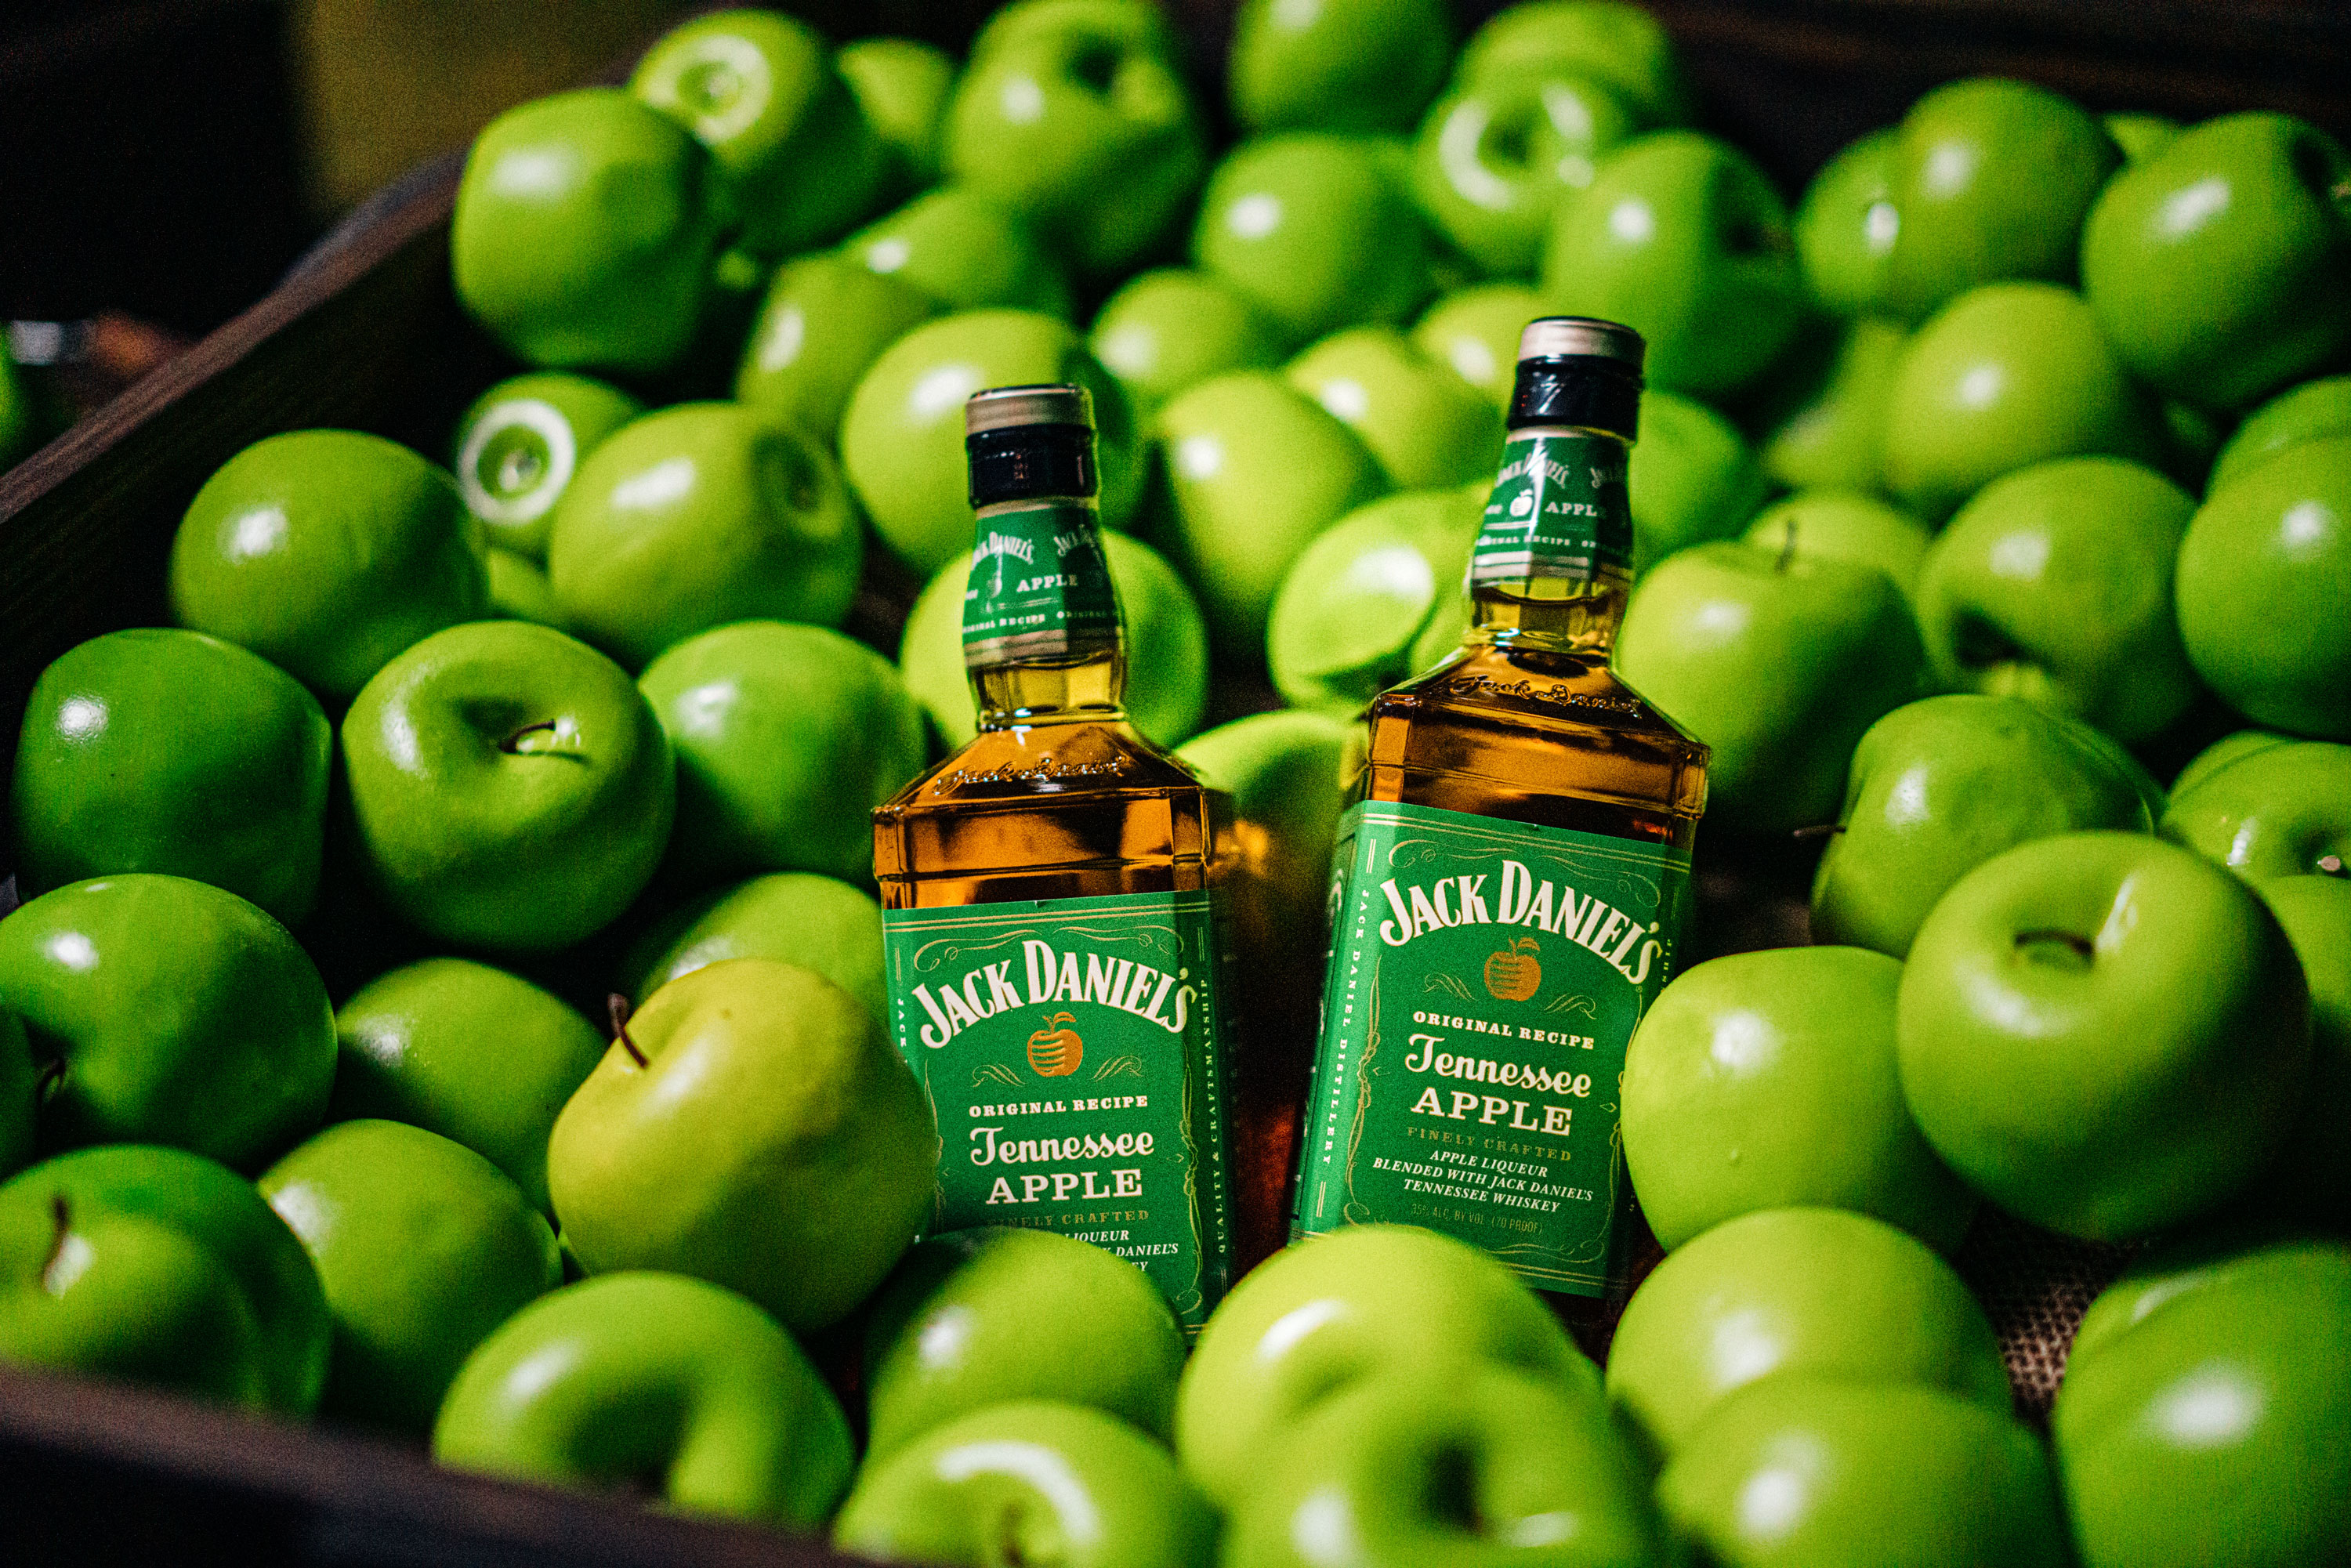 Two Jack Daniels Tennessee Apple bottles in a basket of green apples